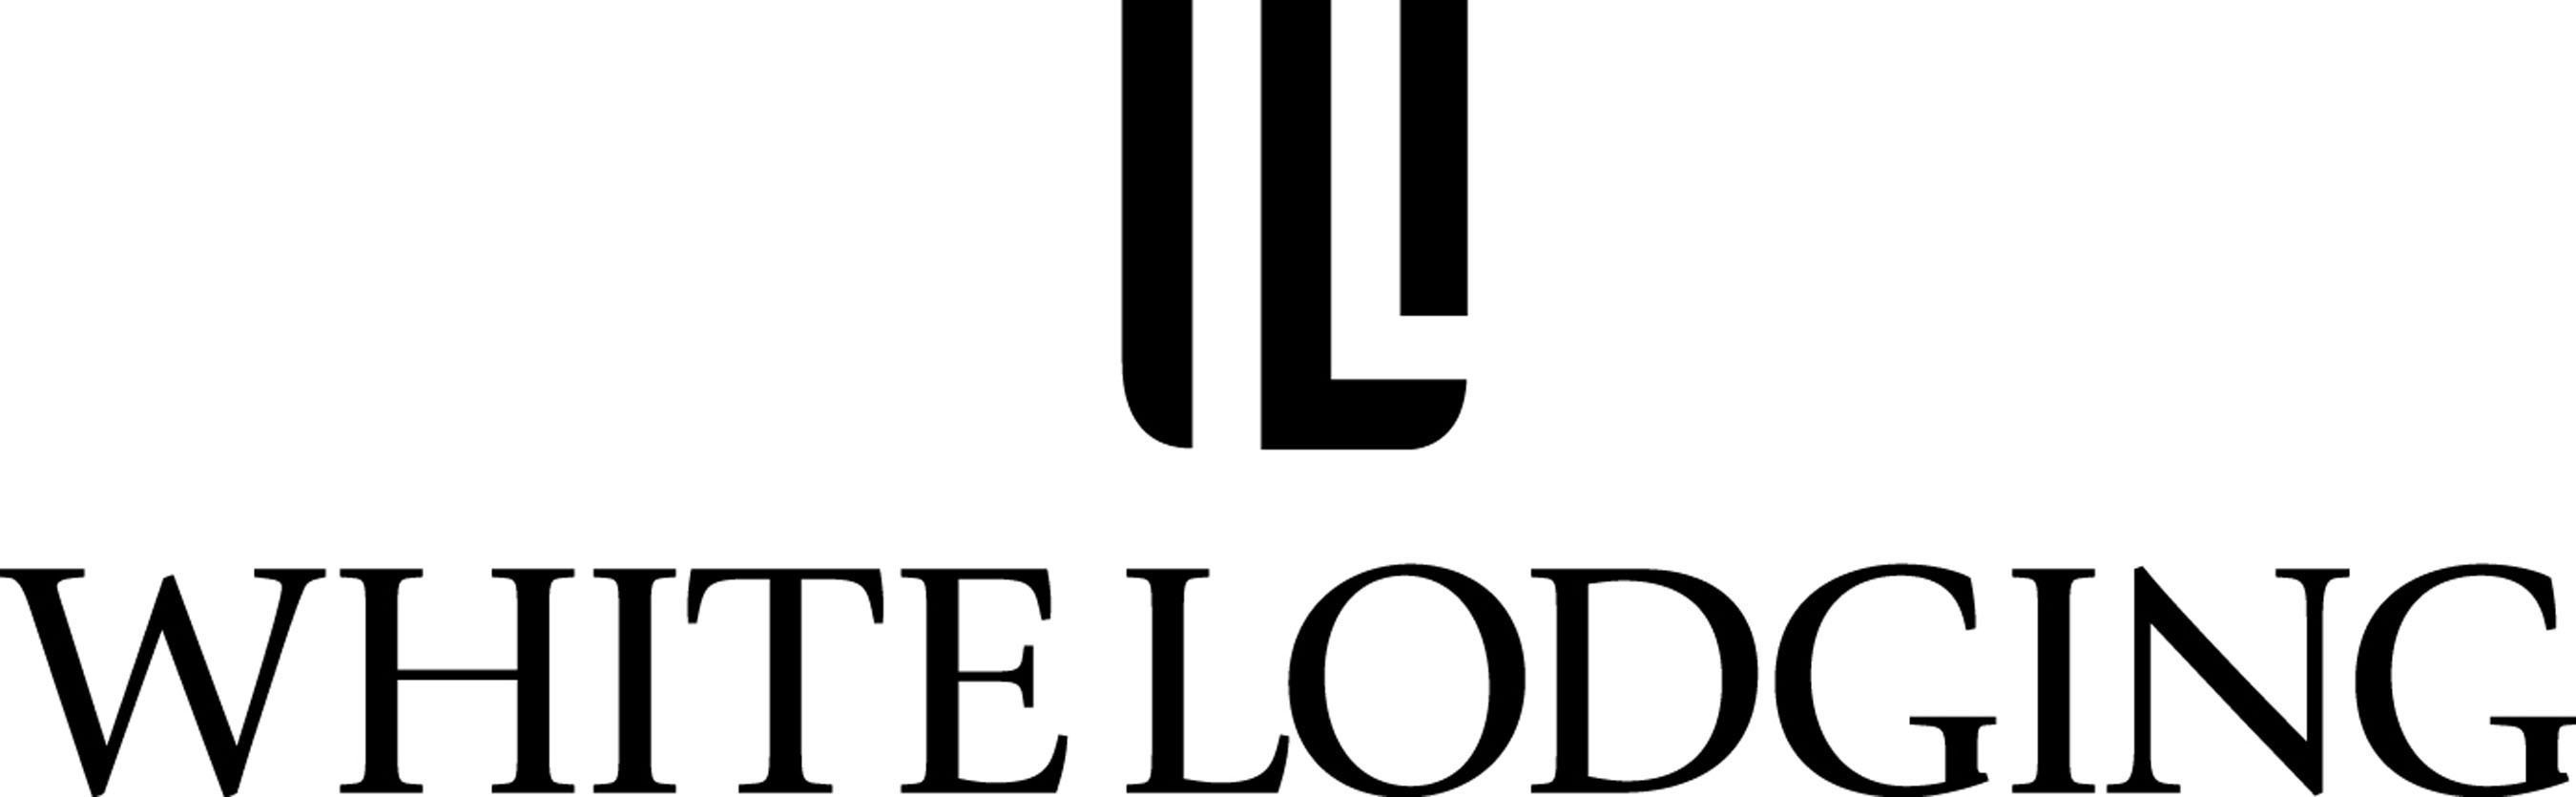 Logo for White Lodging